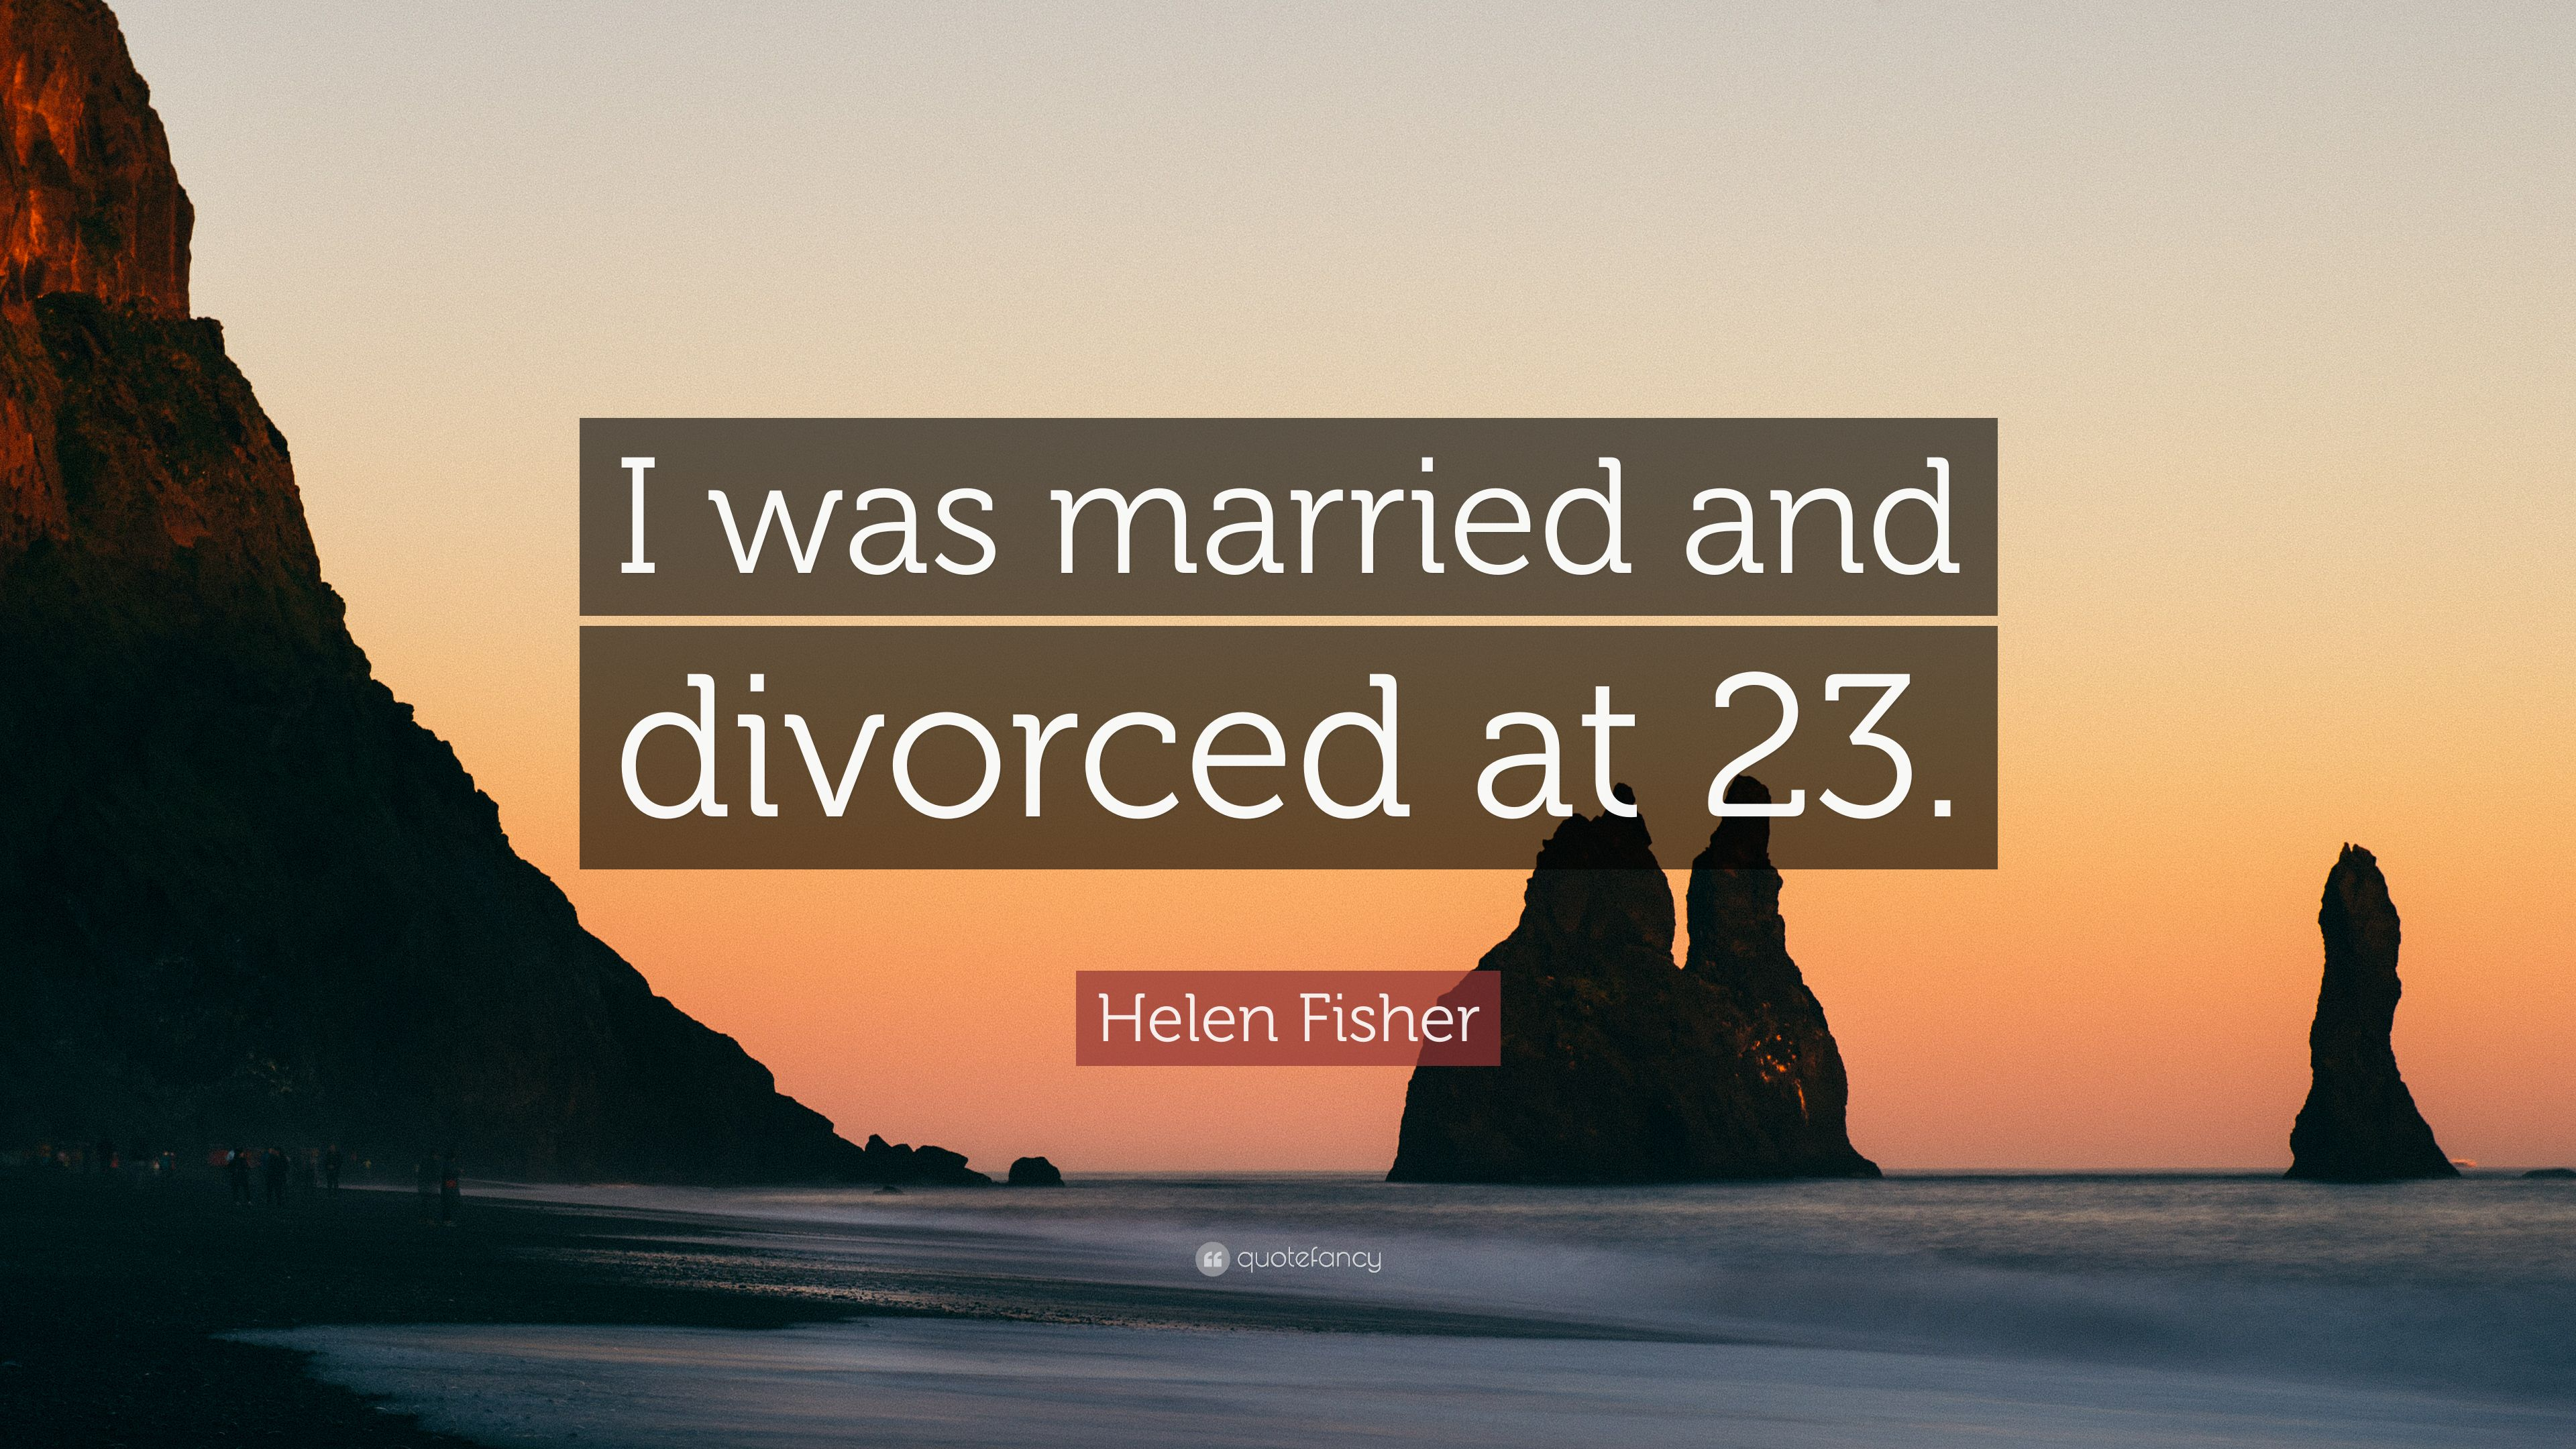 Helen fisher married